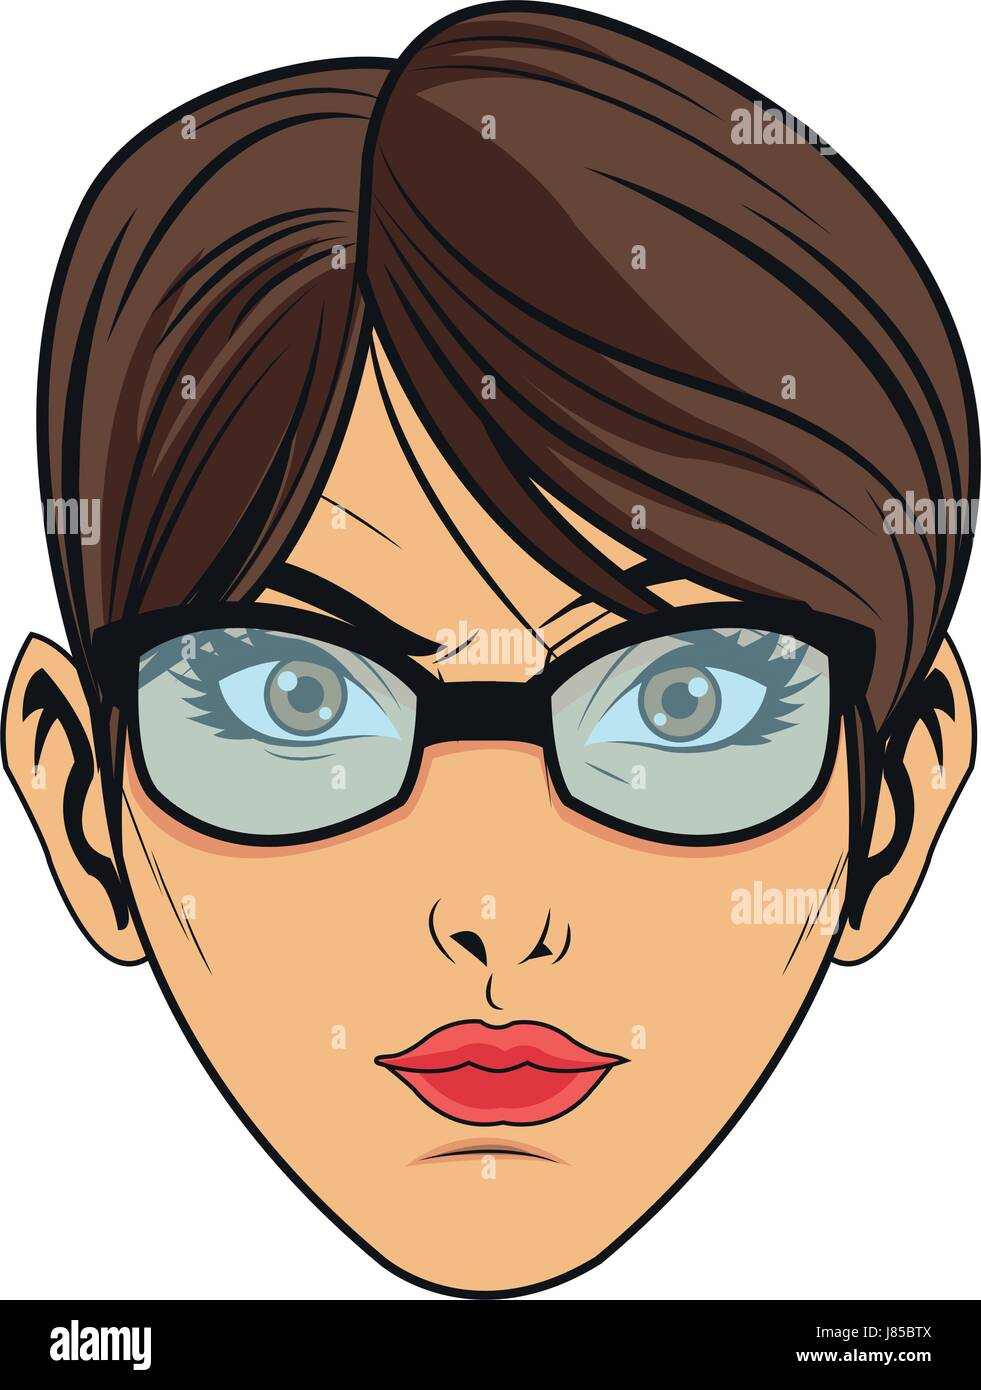 Beauty Face Woman With Glasses And Short Hair Comic Style Stock